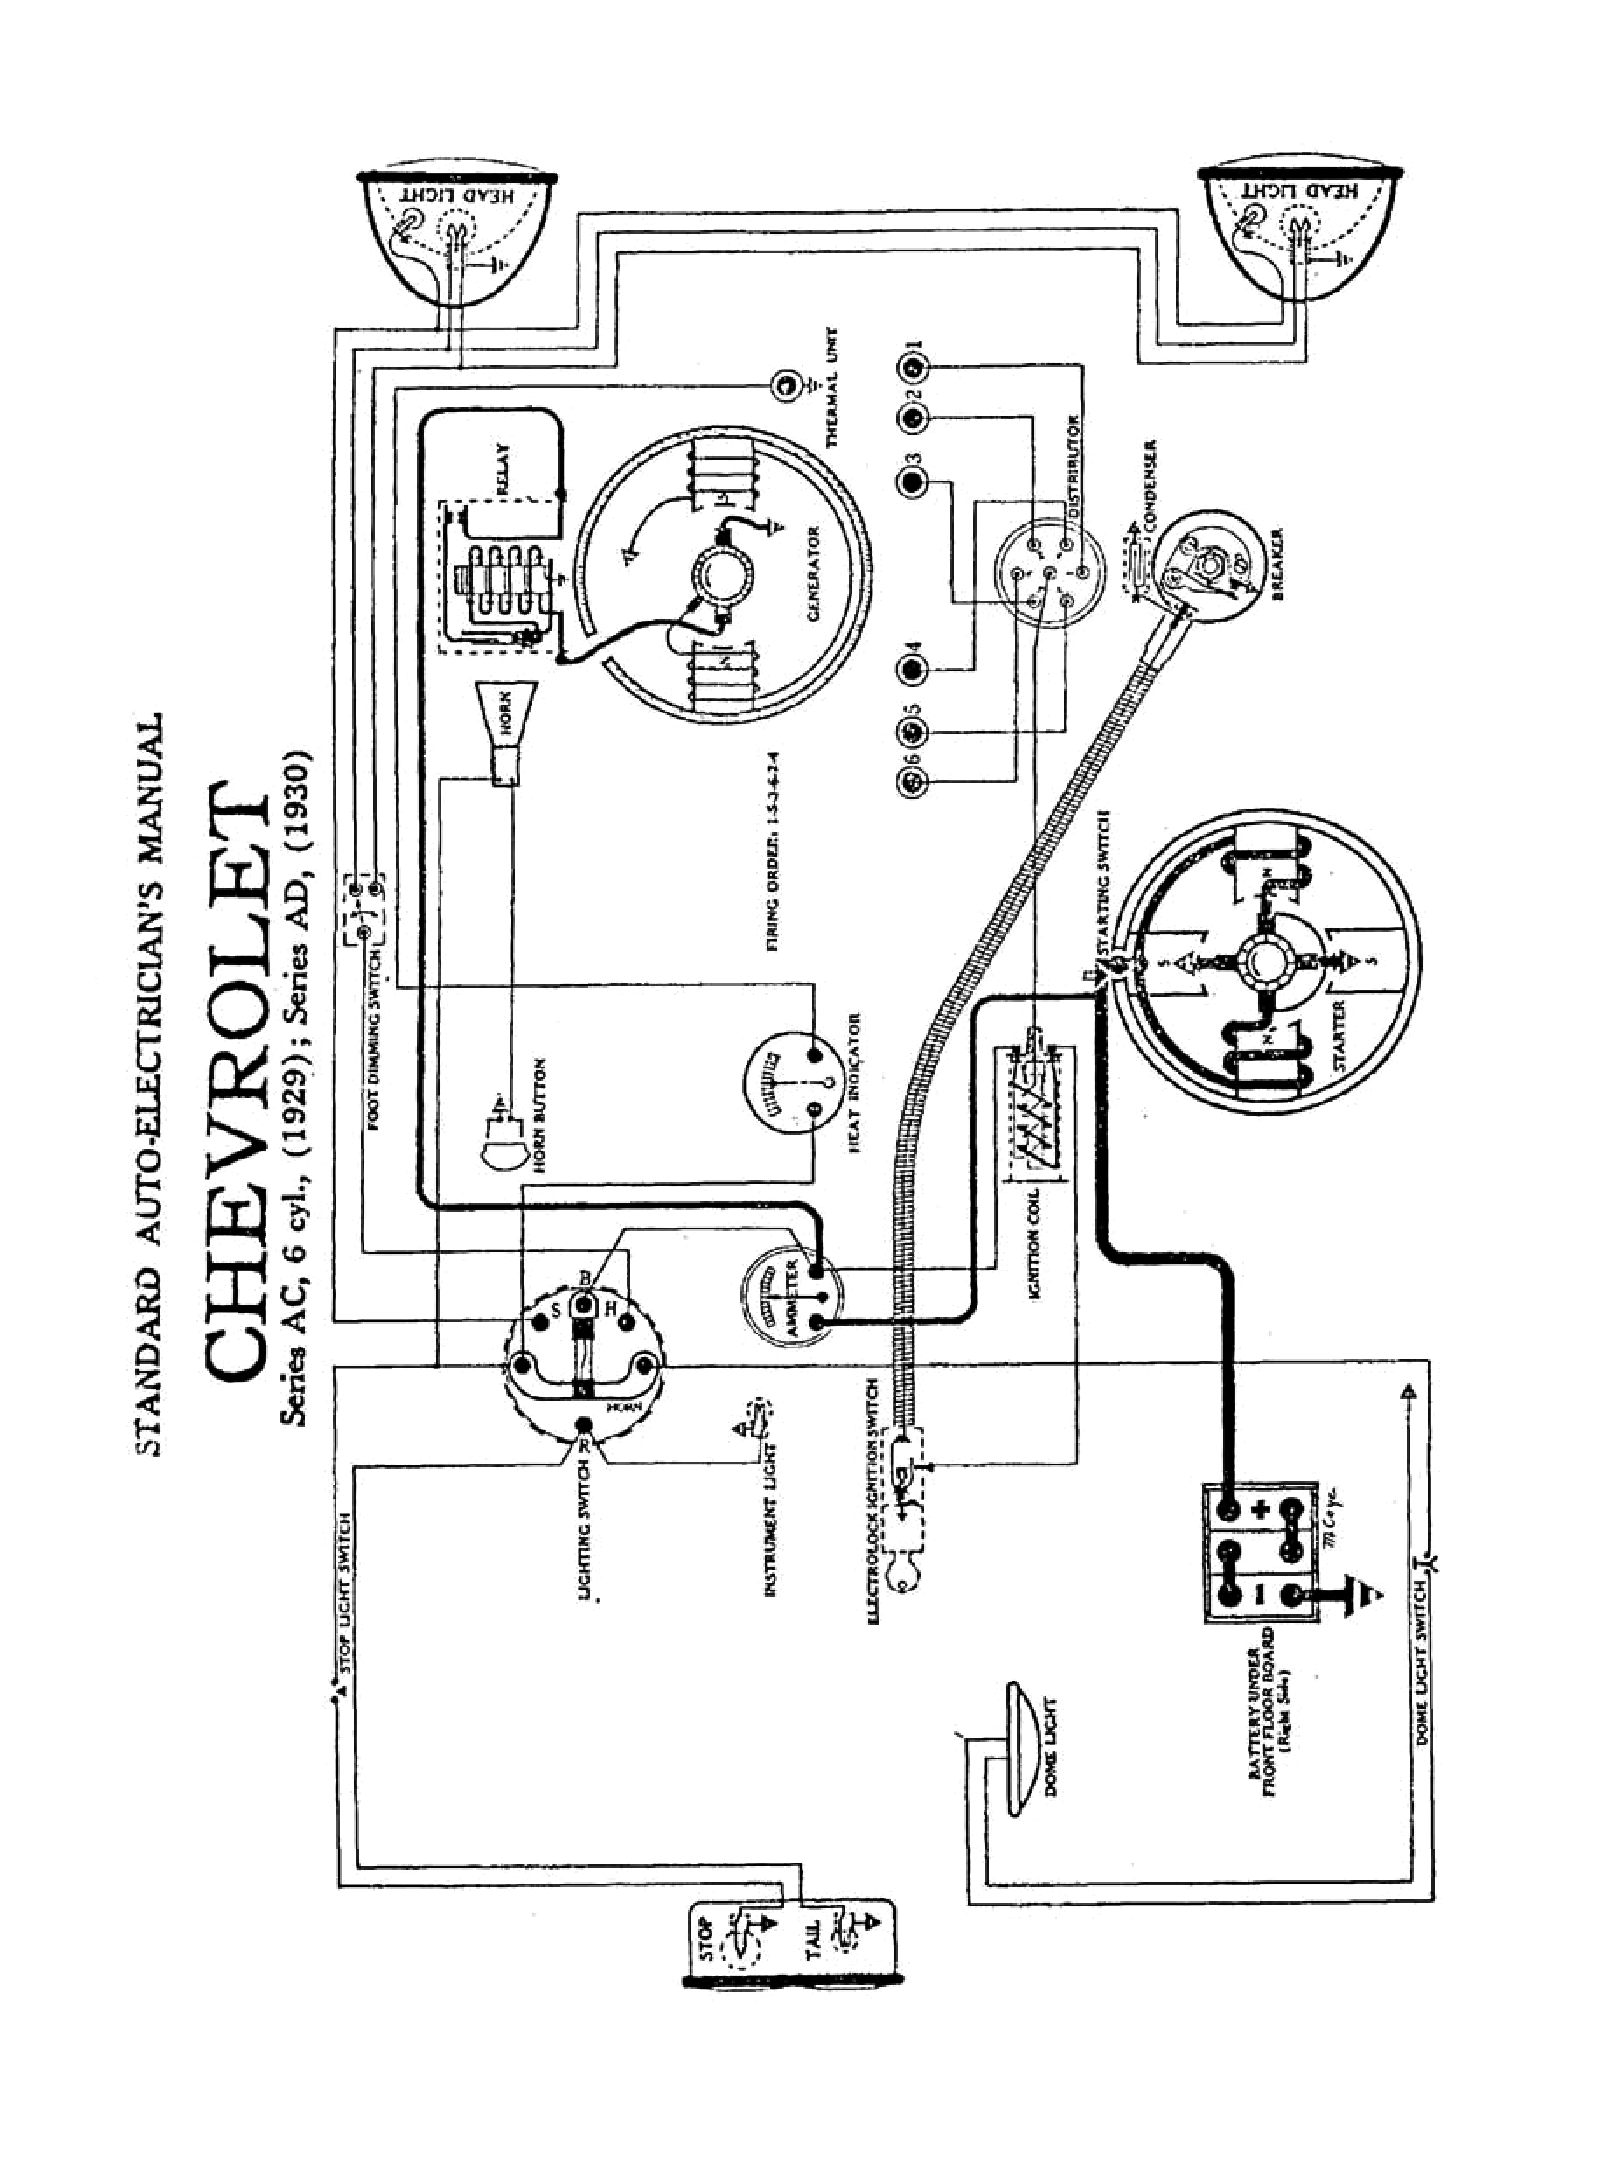 Chevy Generator Wiring Diagram Automotive 55 Alternator Diagrams Rh Oldcarmanualproject Com 350 1955